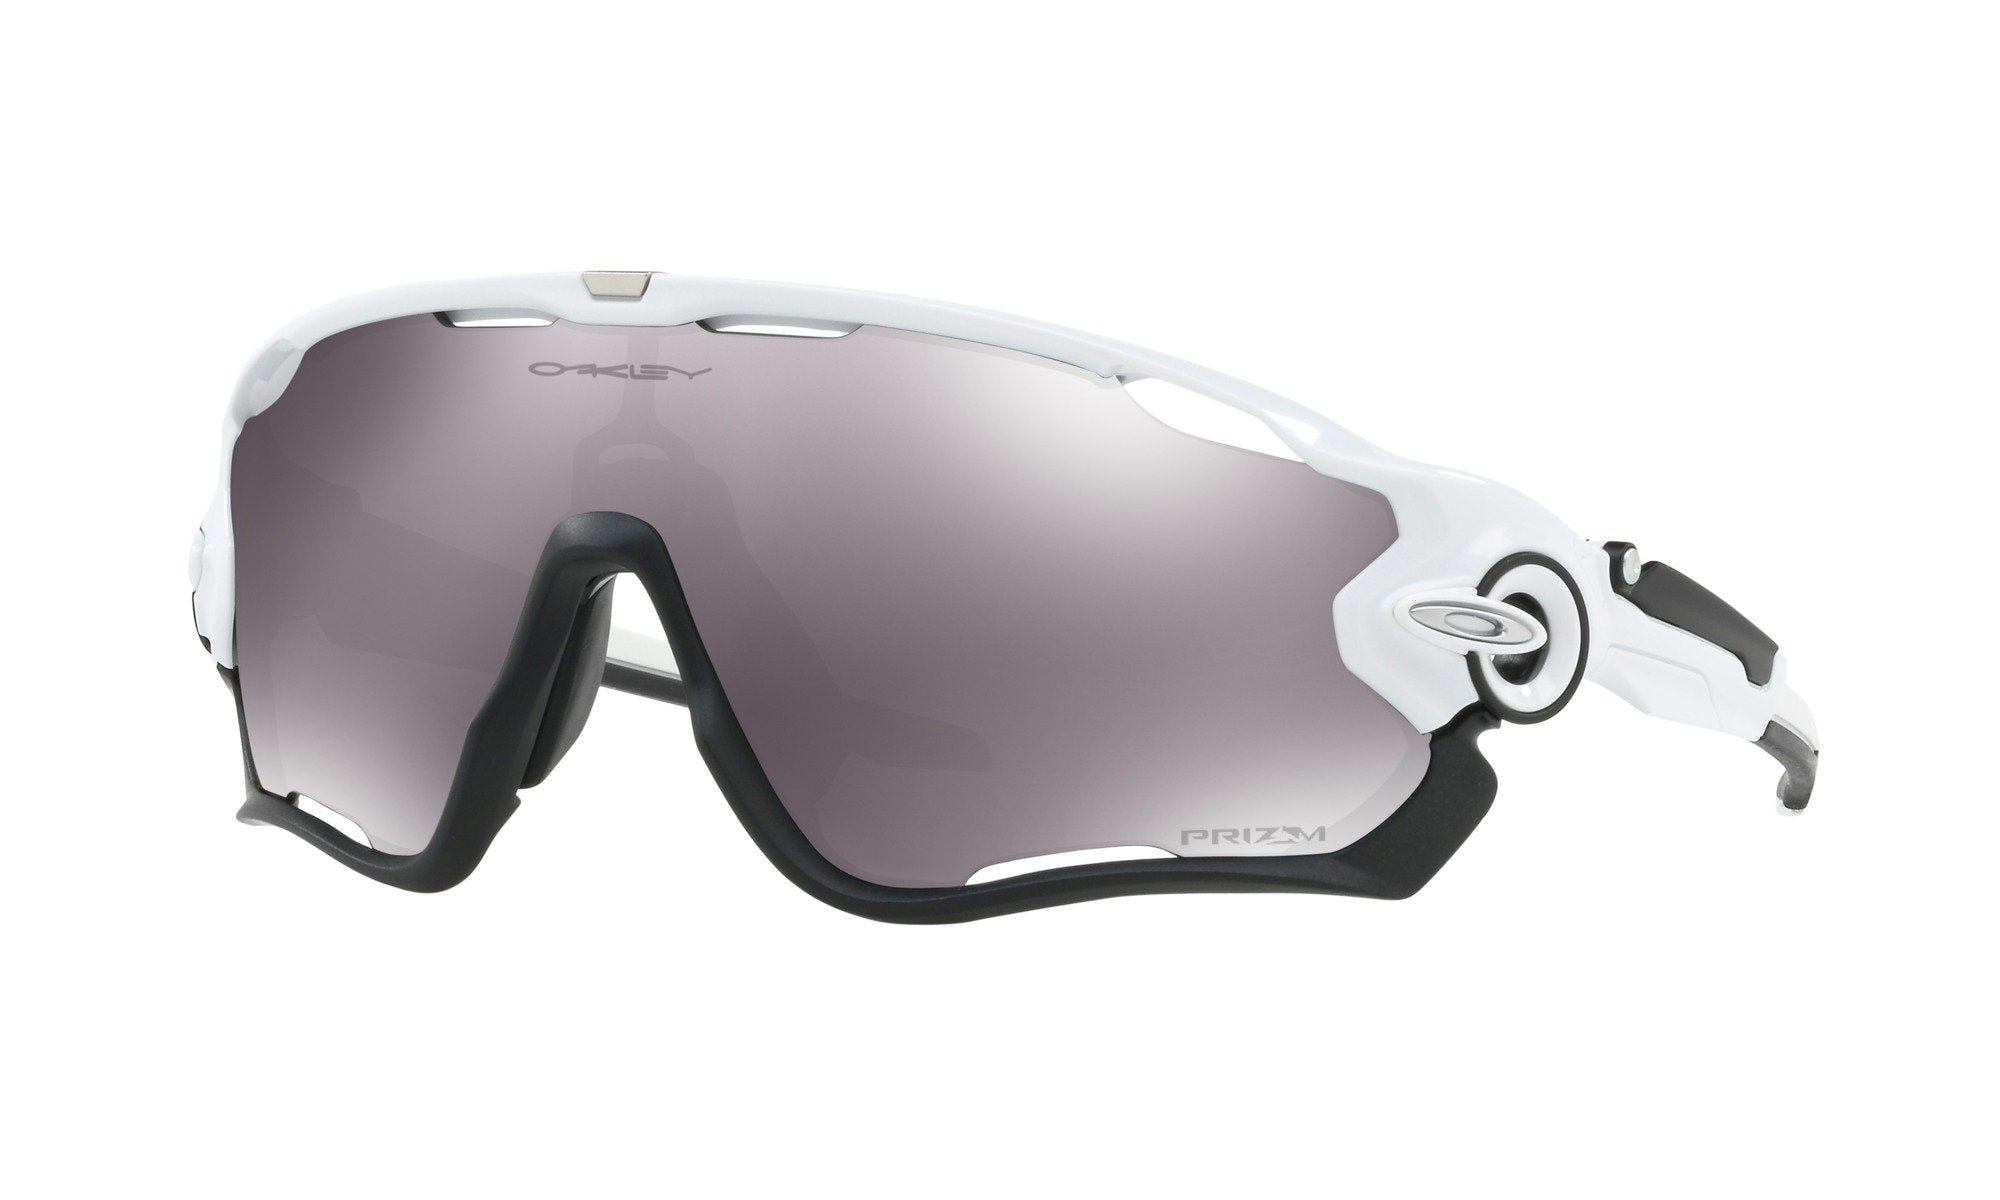 Oakley  Jawbreaker Polished White w/ Prizm Black Lens - Cycles Galleria Melbourne